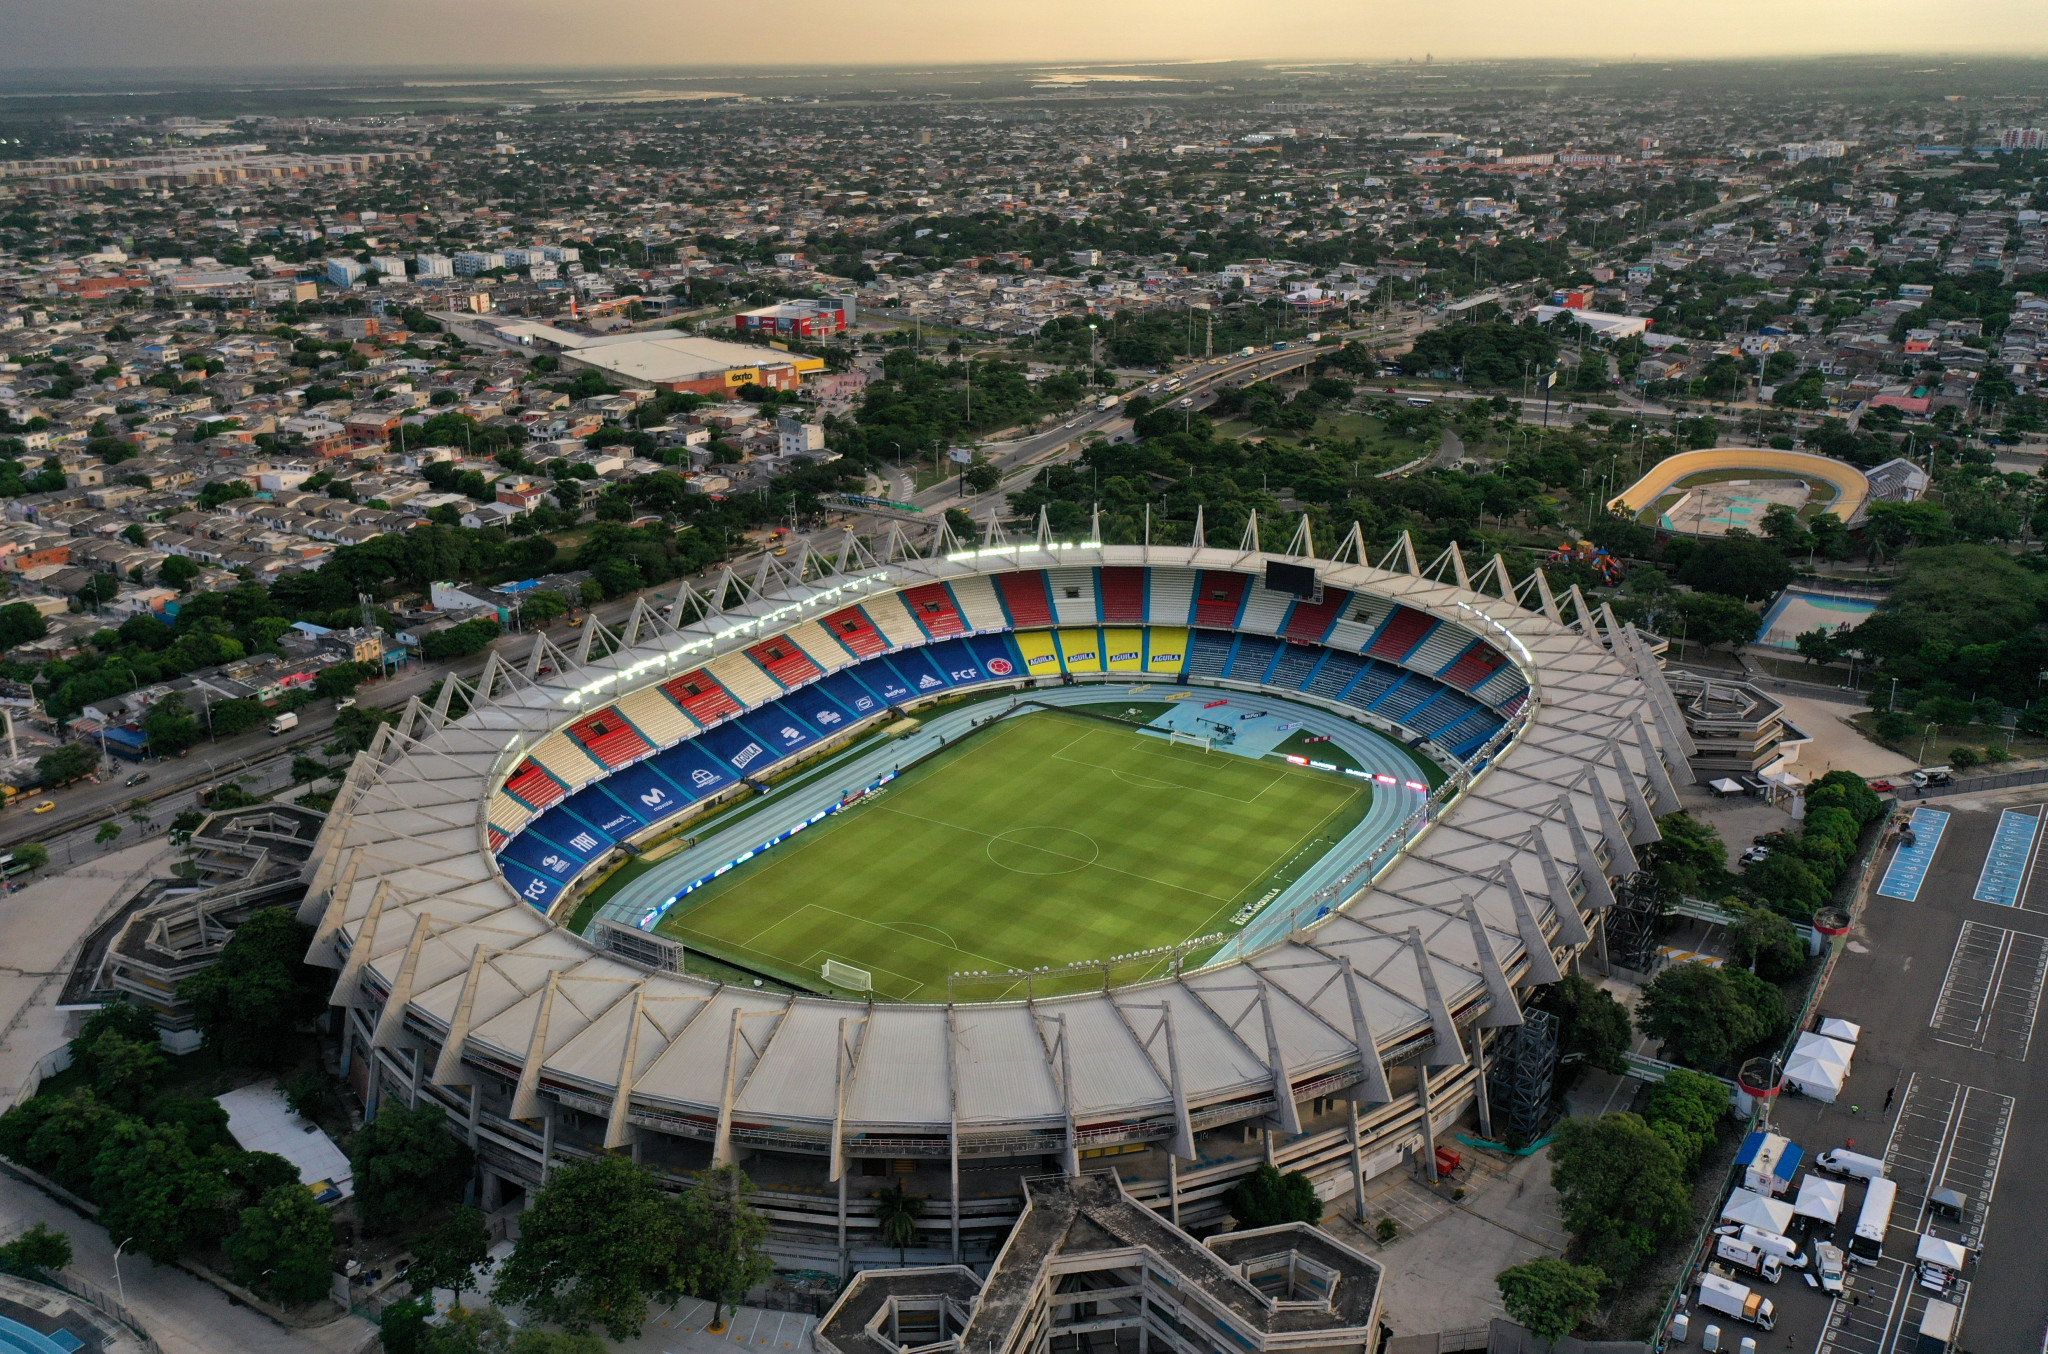 """Barranquilla 2027 can be achieved with """"rational"""" spending and Central American and Caribbean Games venues, Mayor insists"""